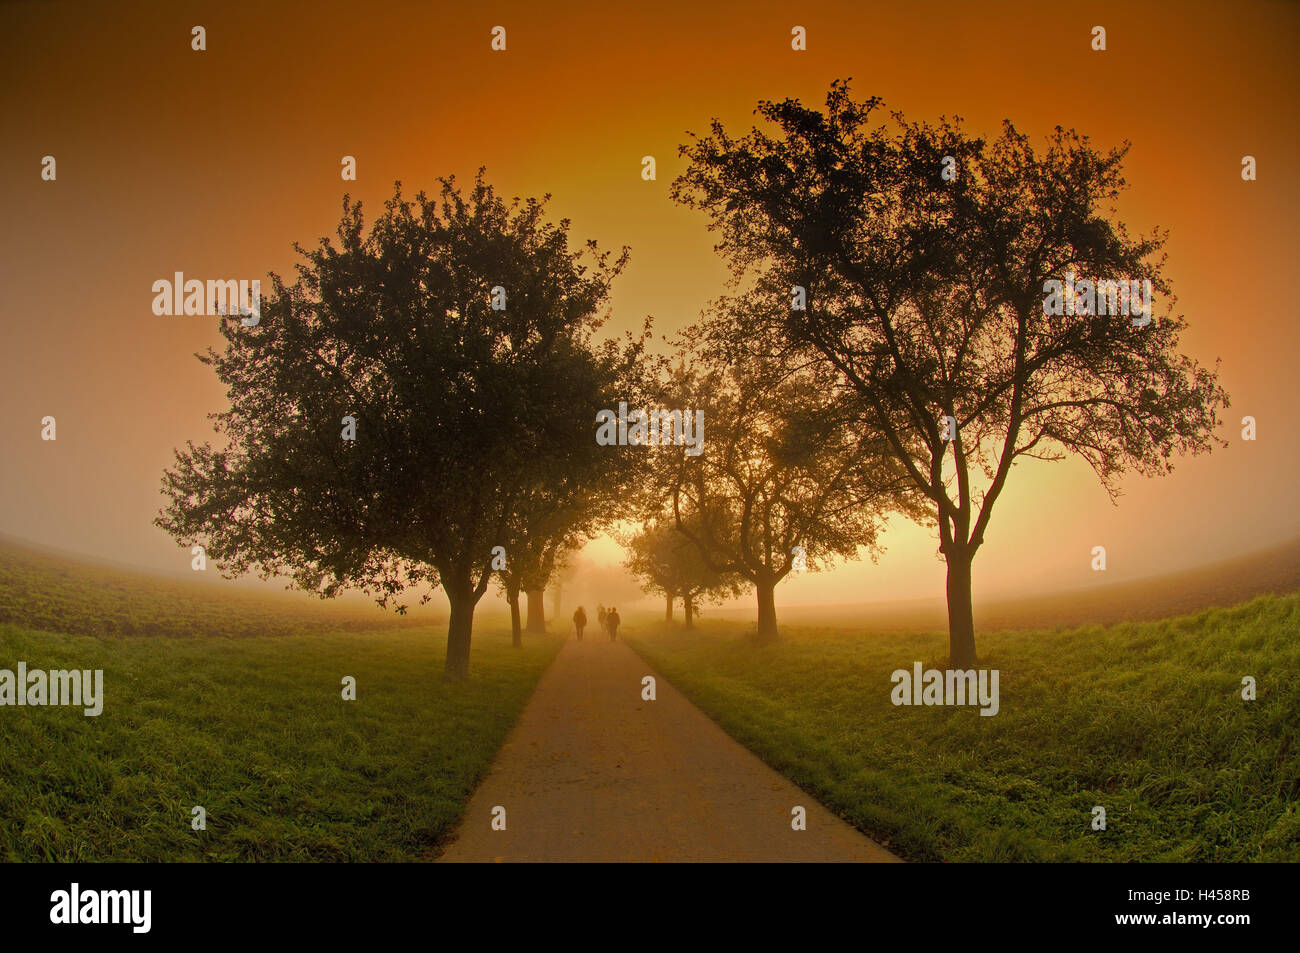 Track, fogs, people, goes,  Move opinion, [M], - Stock Image